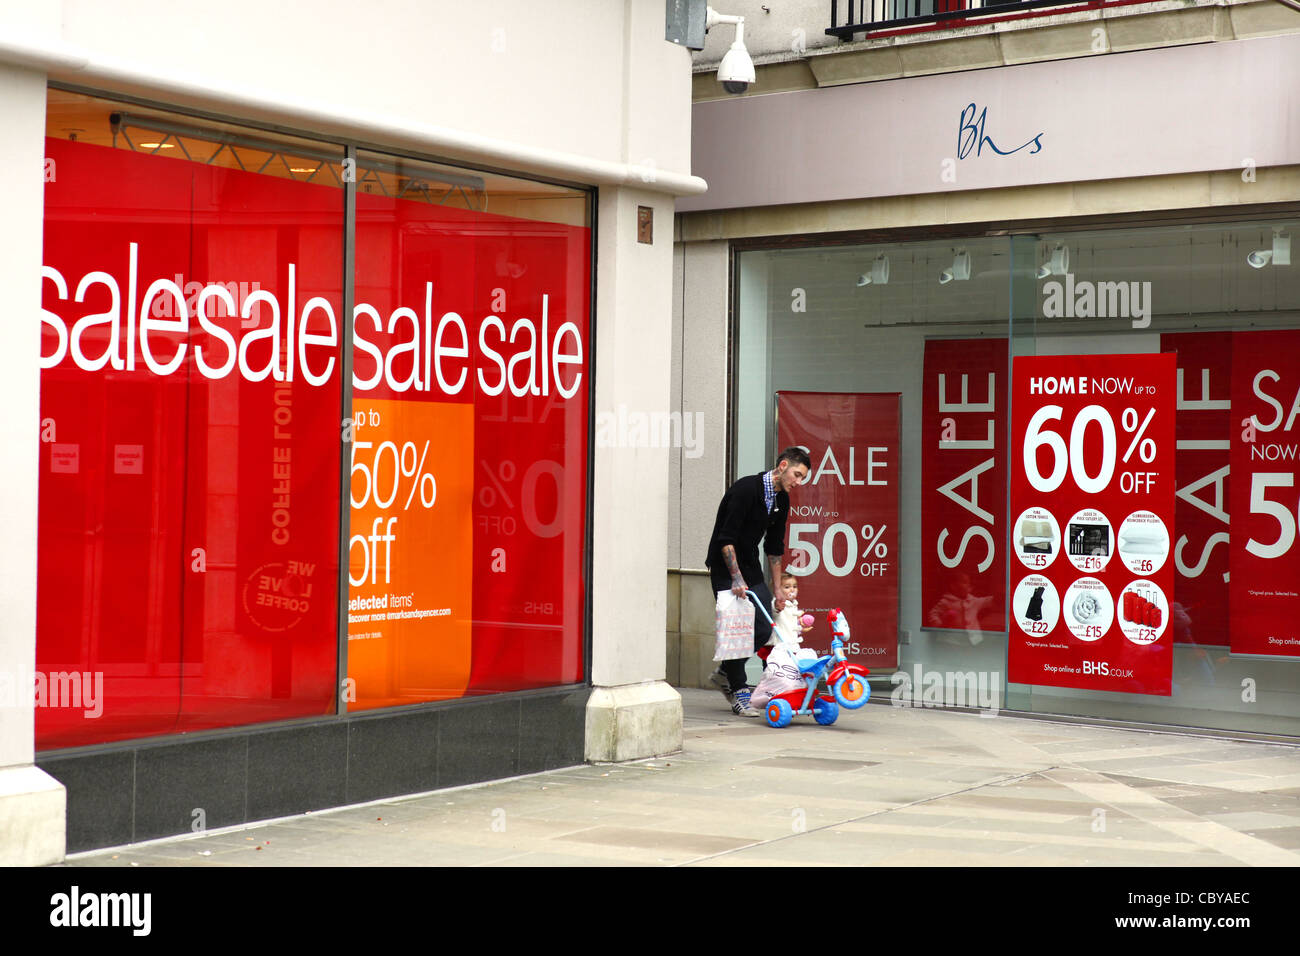 Windows On Sale Boxing Day Sale Posters In A Shop Window Stock Photo